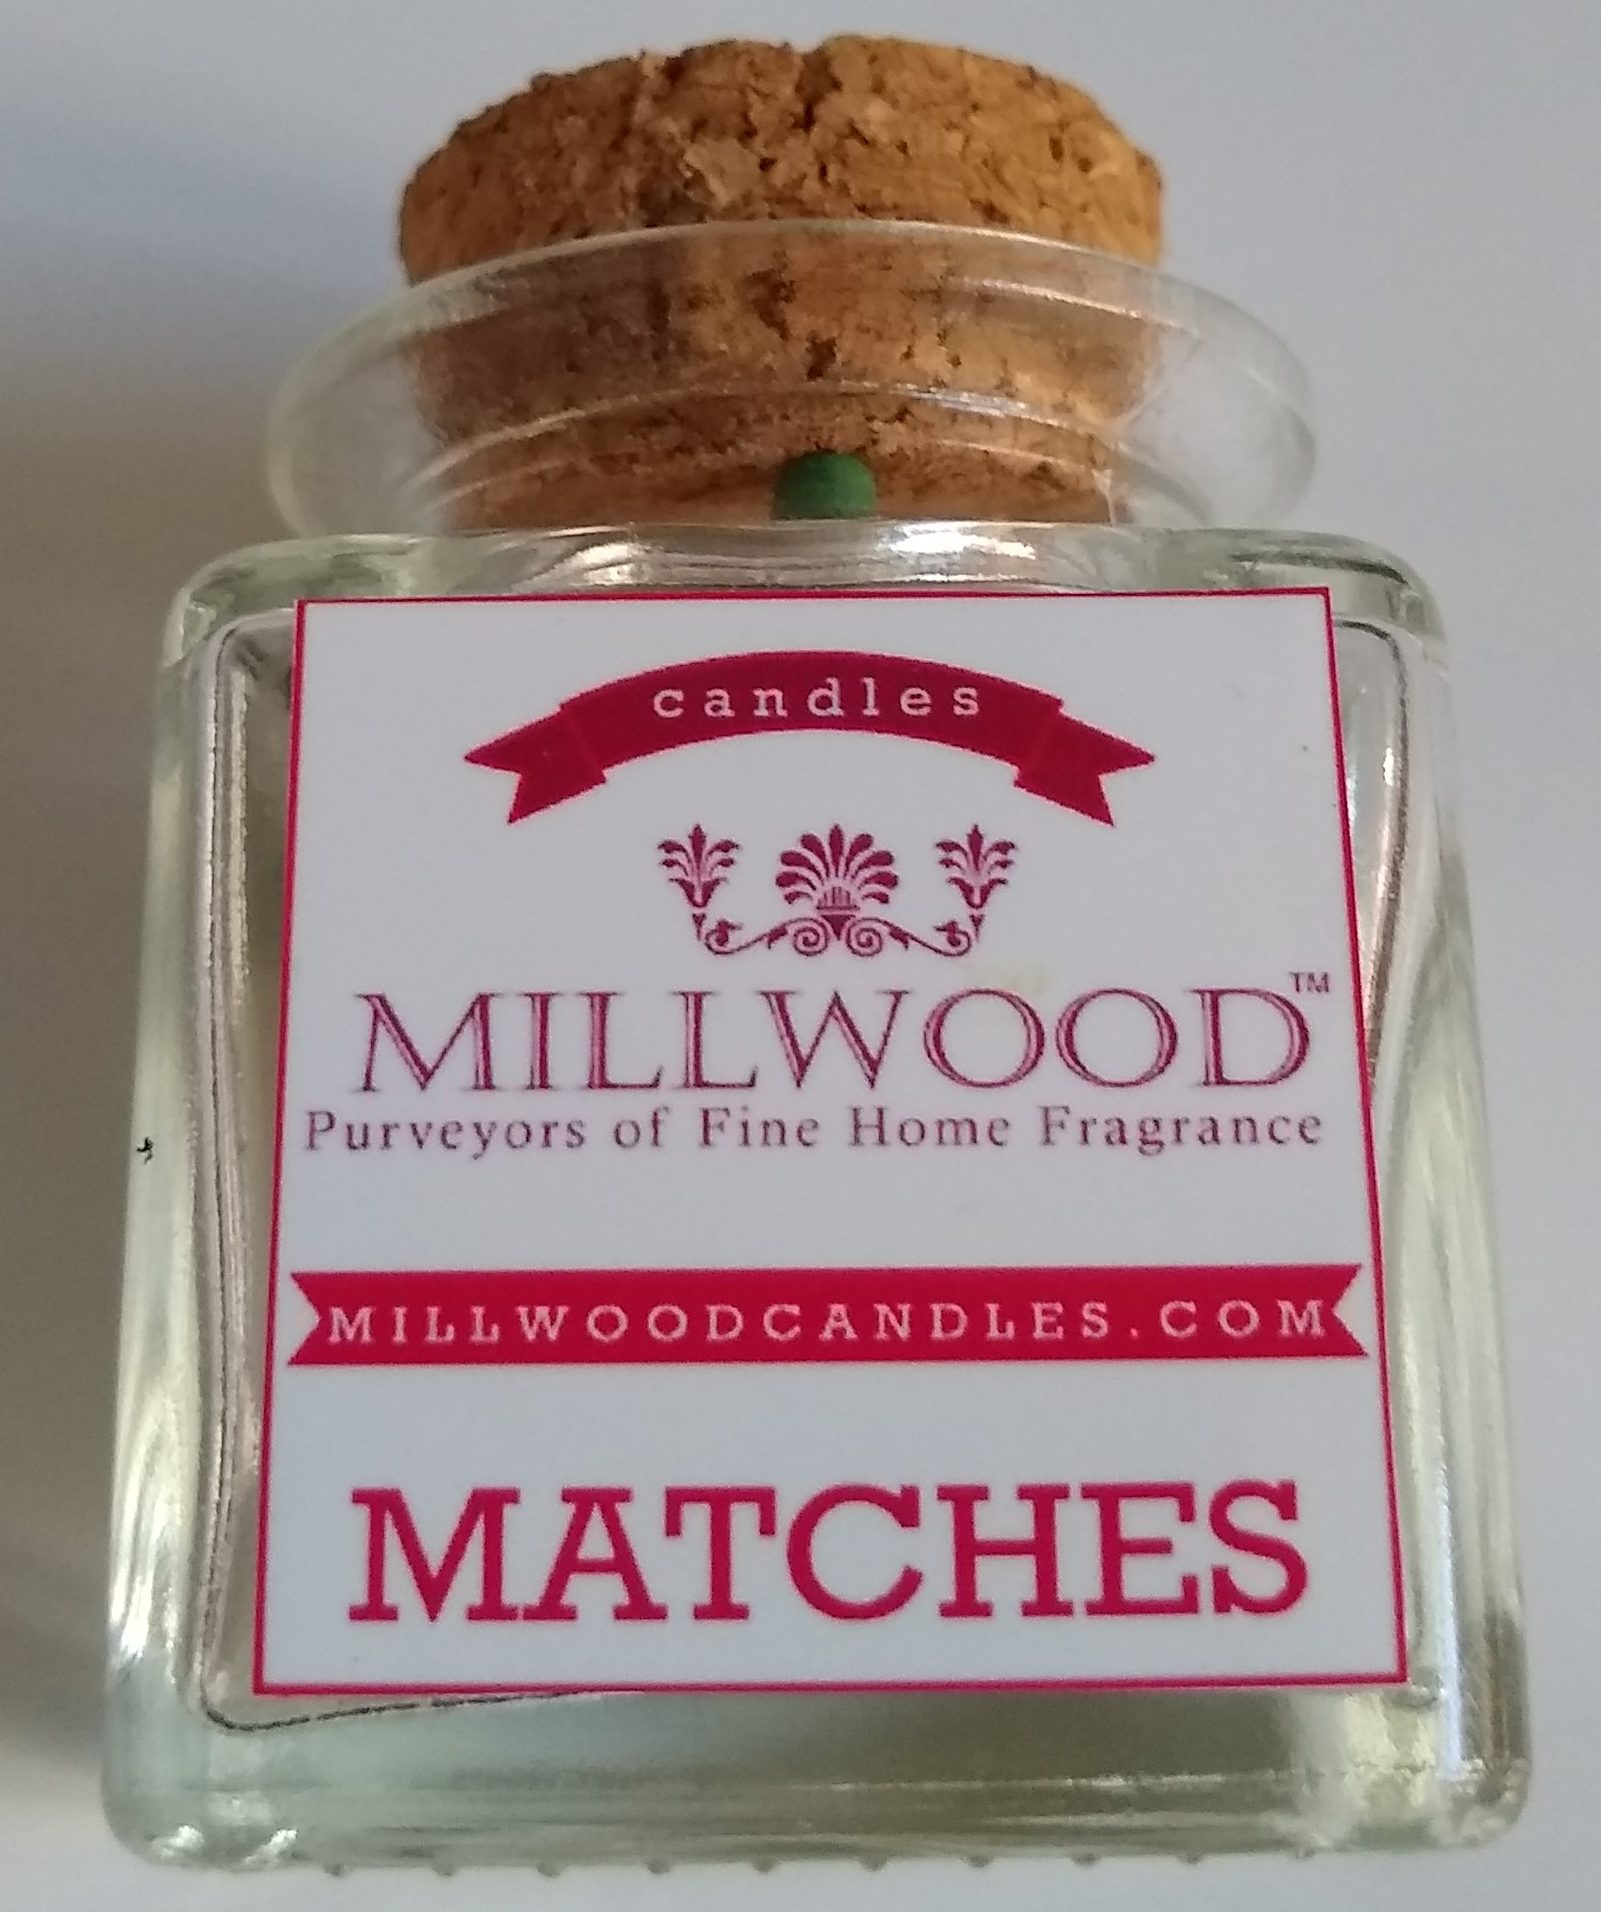 Matches from Millwood Candles